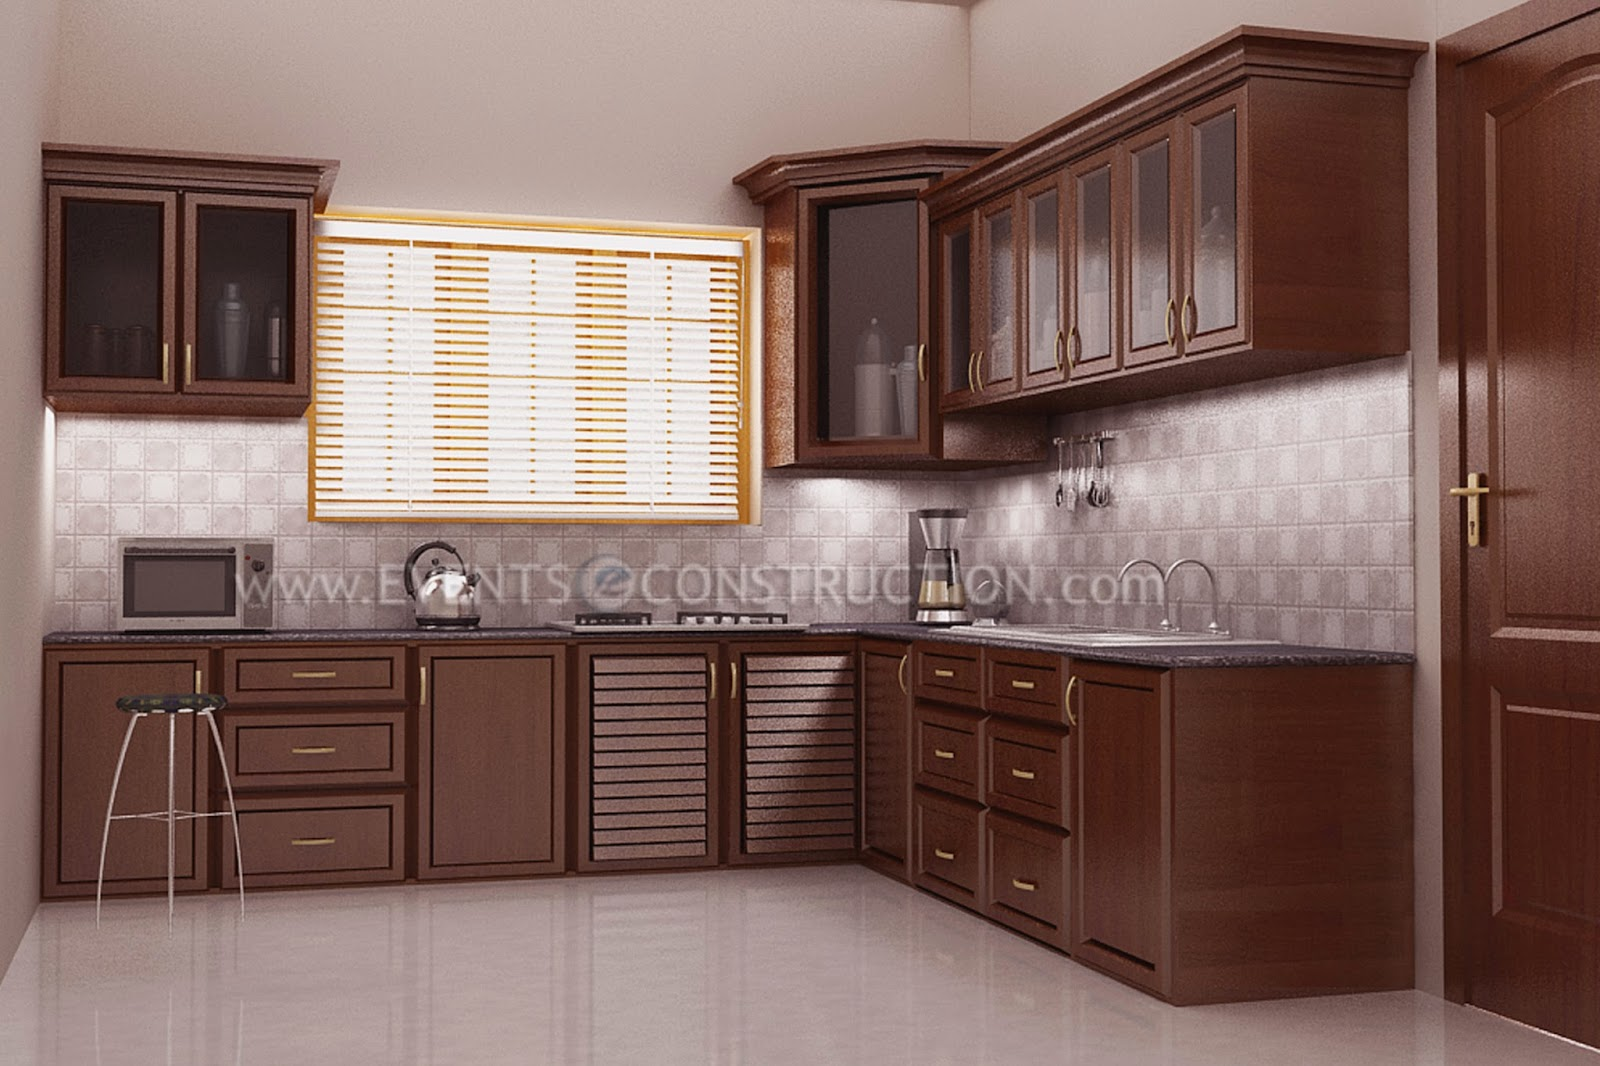 Evens construction pvt ltd kitchen design with wooden for Kitchen modeler